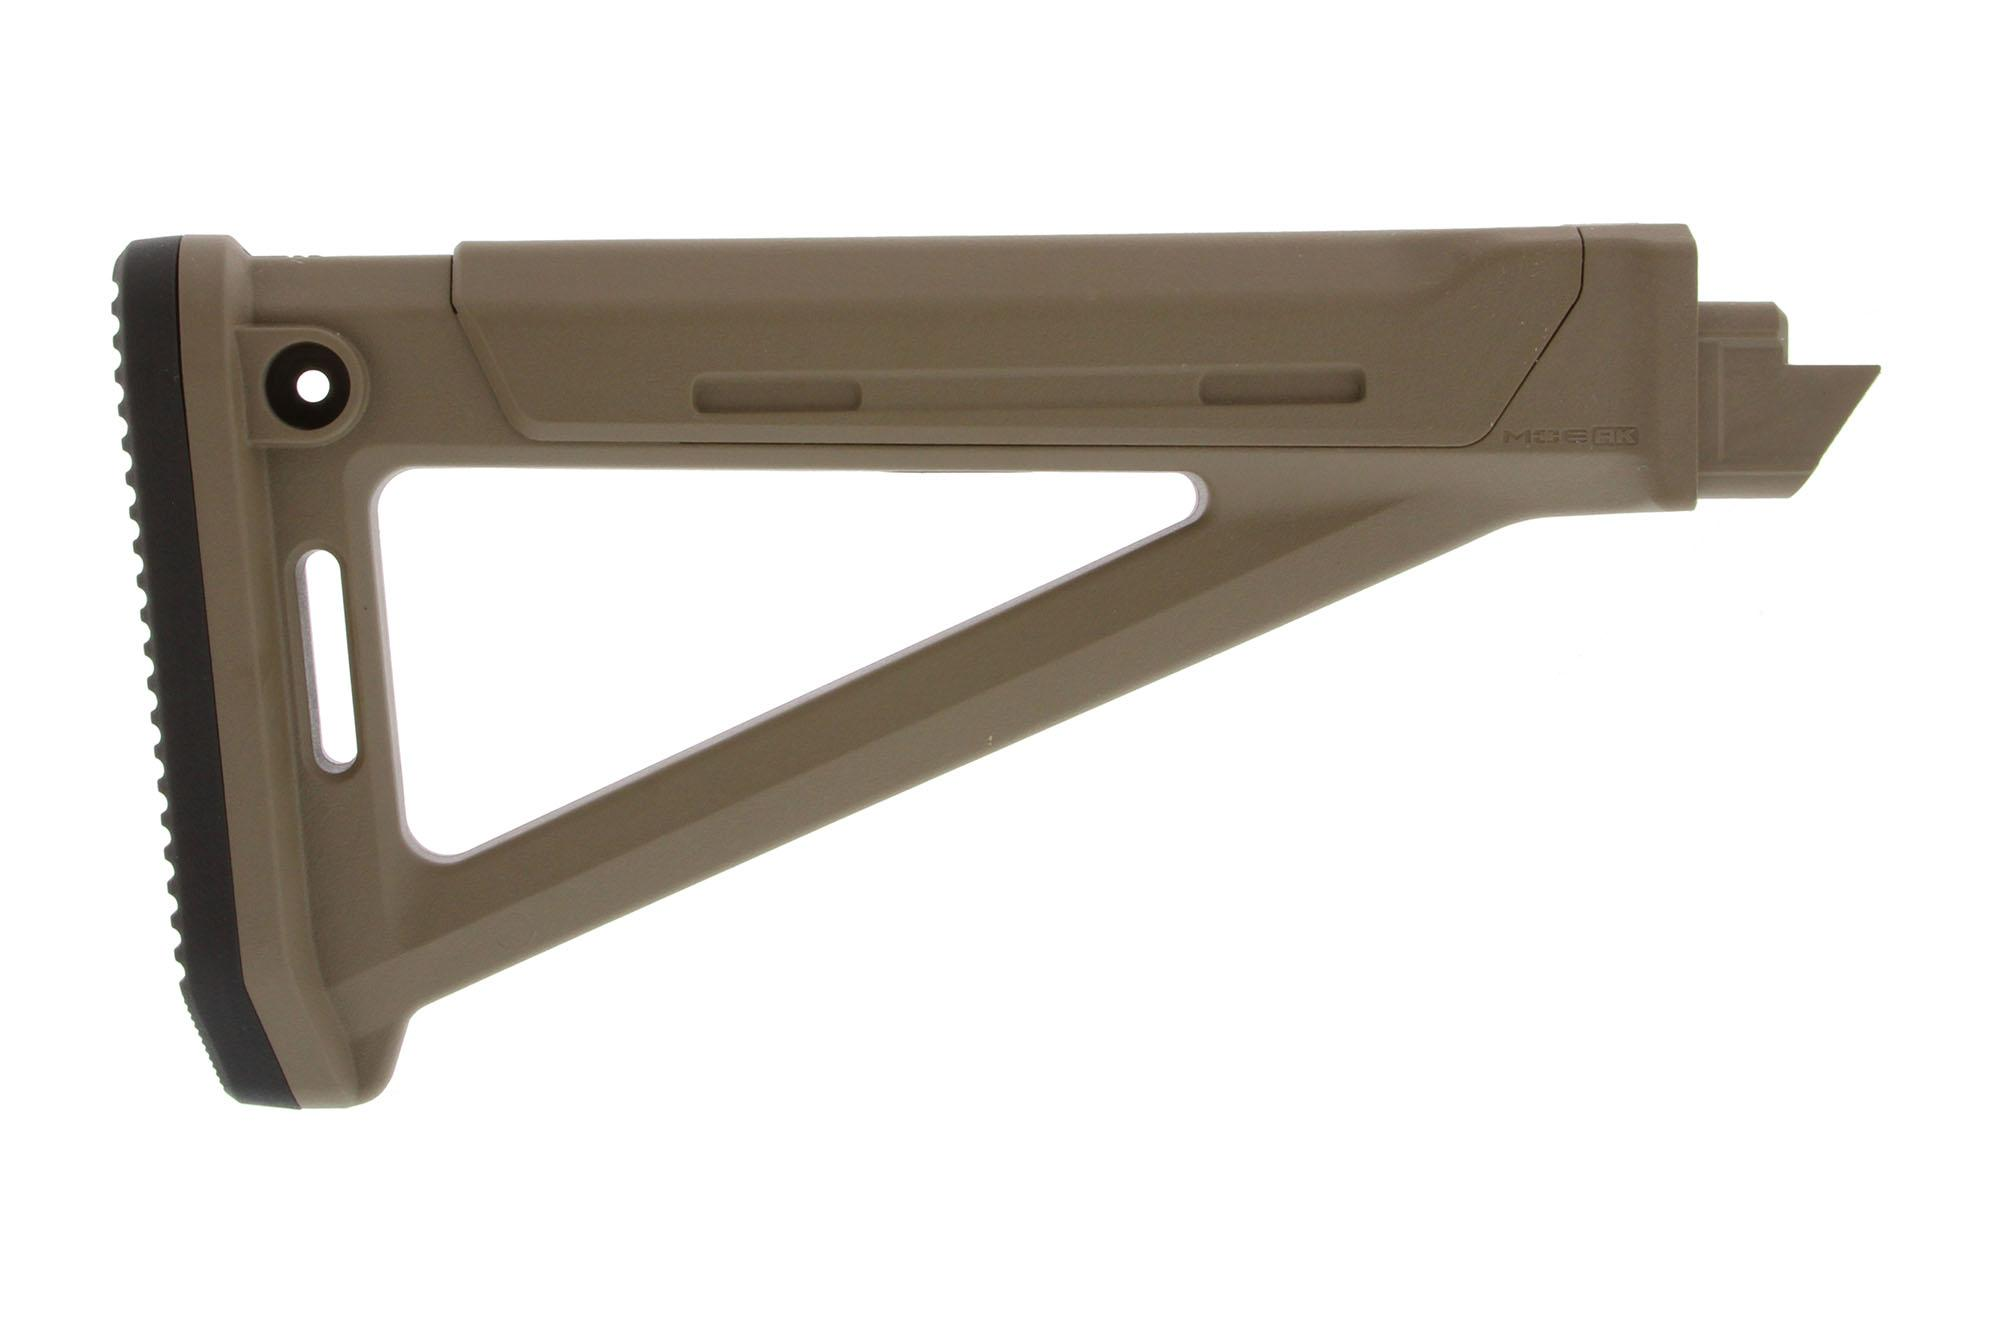 The Magpul MOE AK Stock fixed is made from a durable flat dark earth polymer